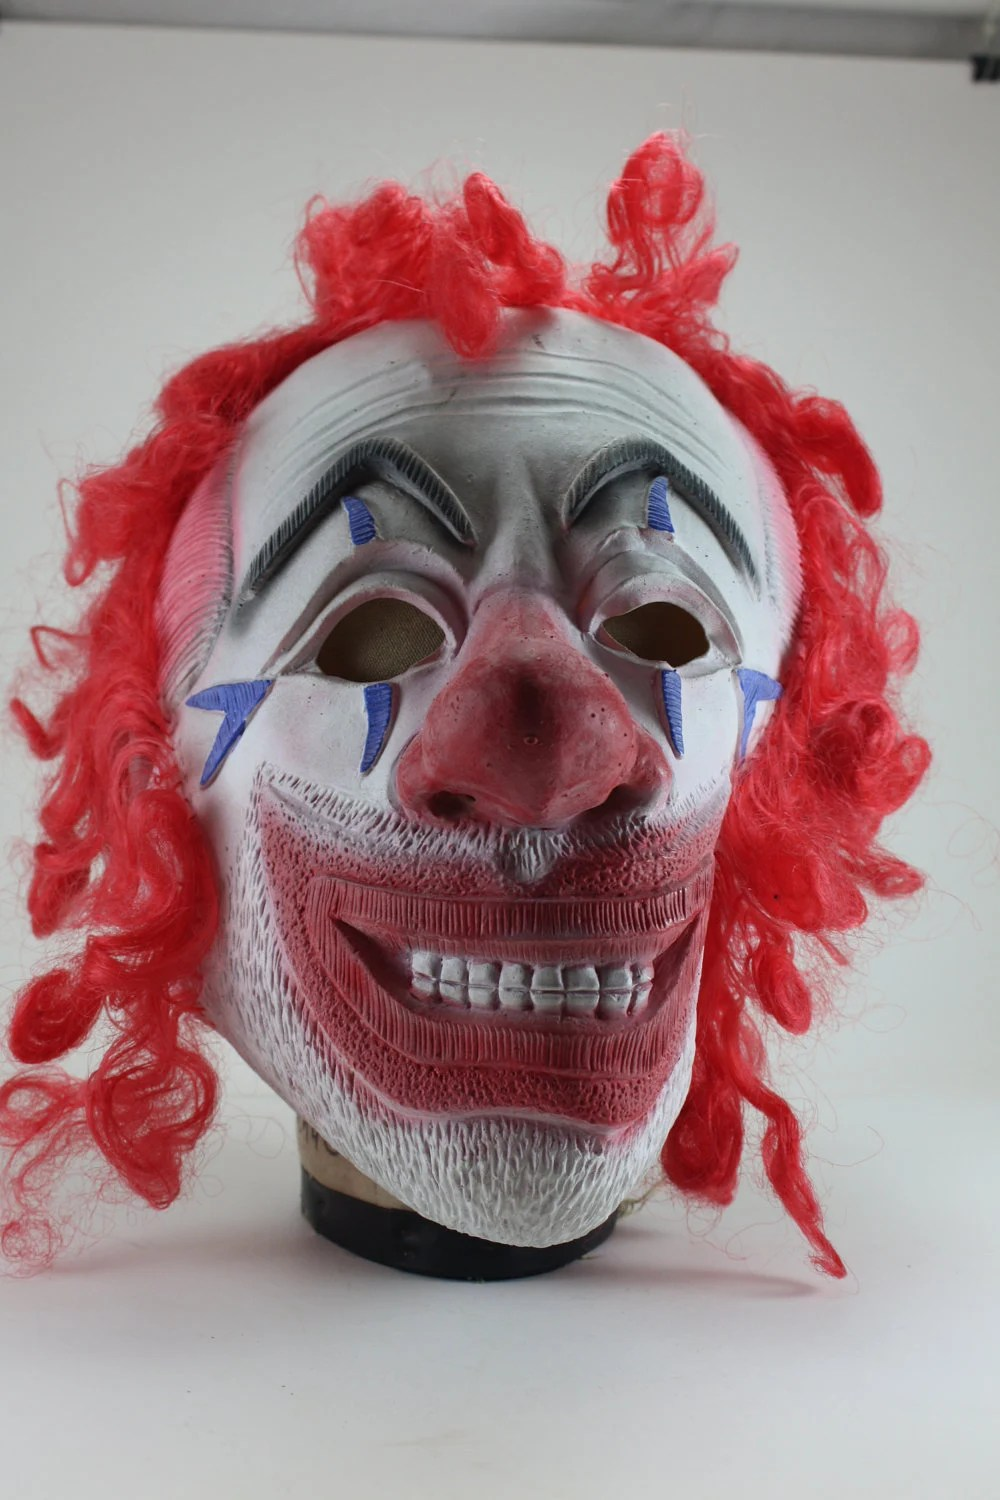 how to make a wooden beach chair swivel dfs vintage ugly creepy scary clown rubber mask